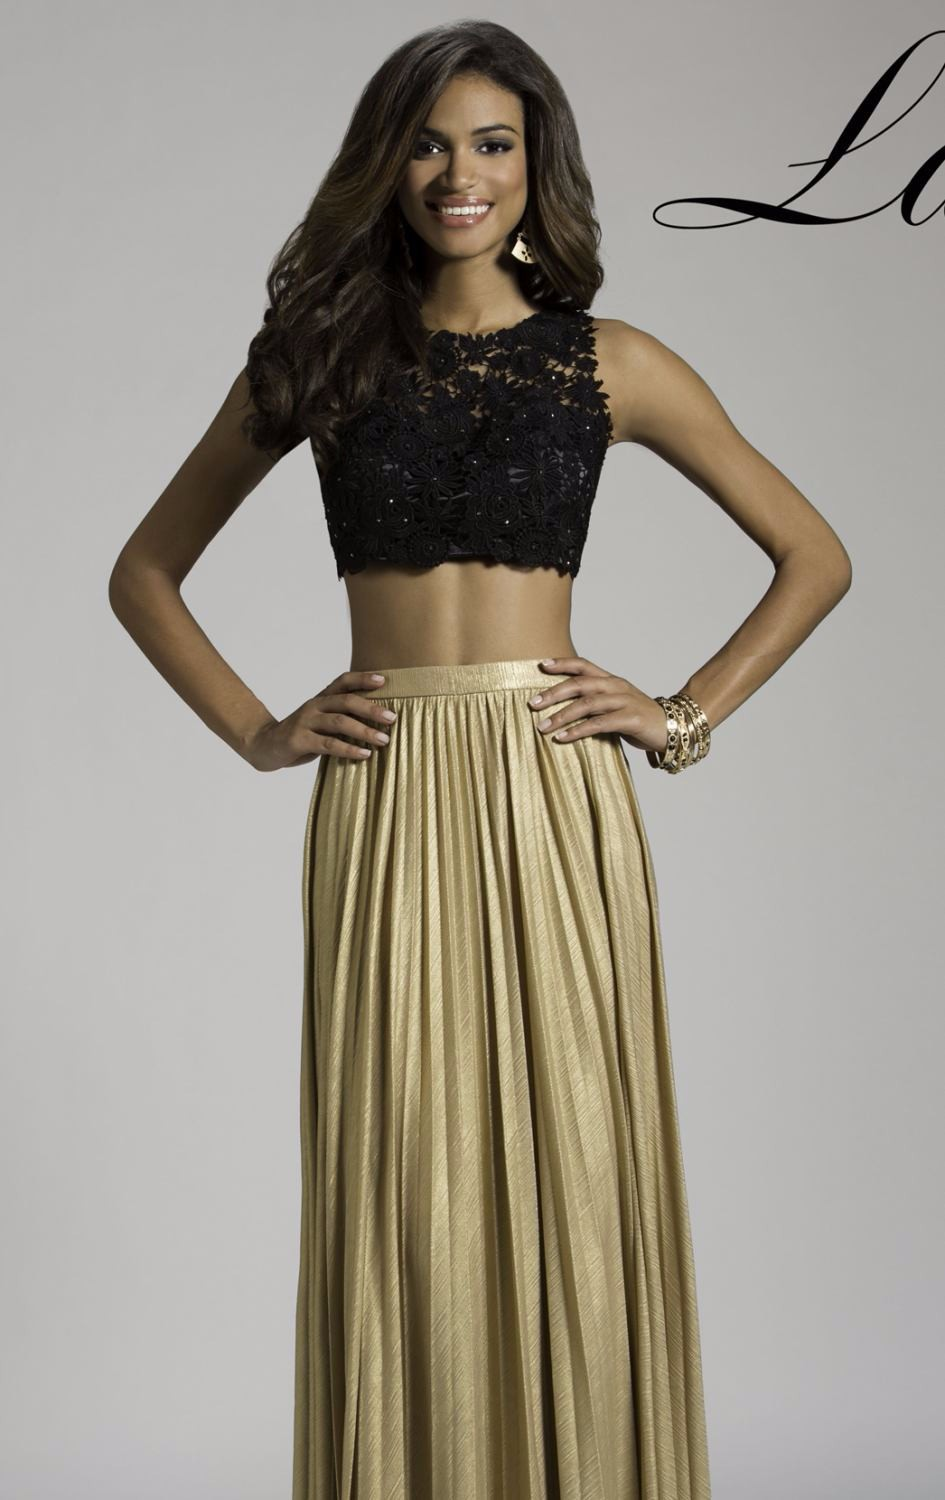 Straight Black and Gold Prom Dresses